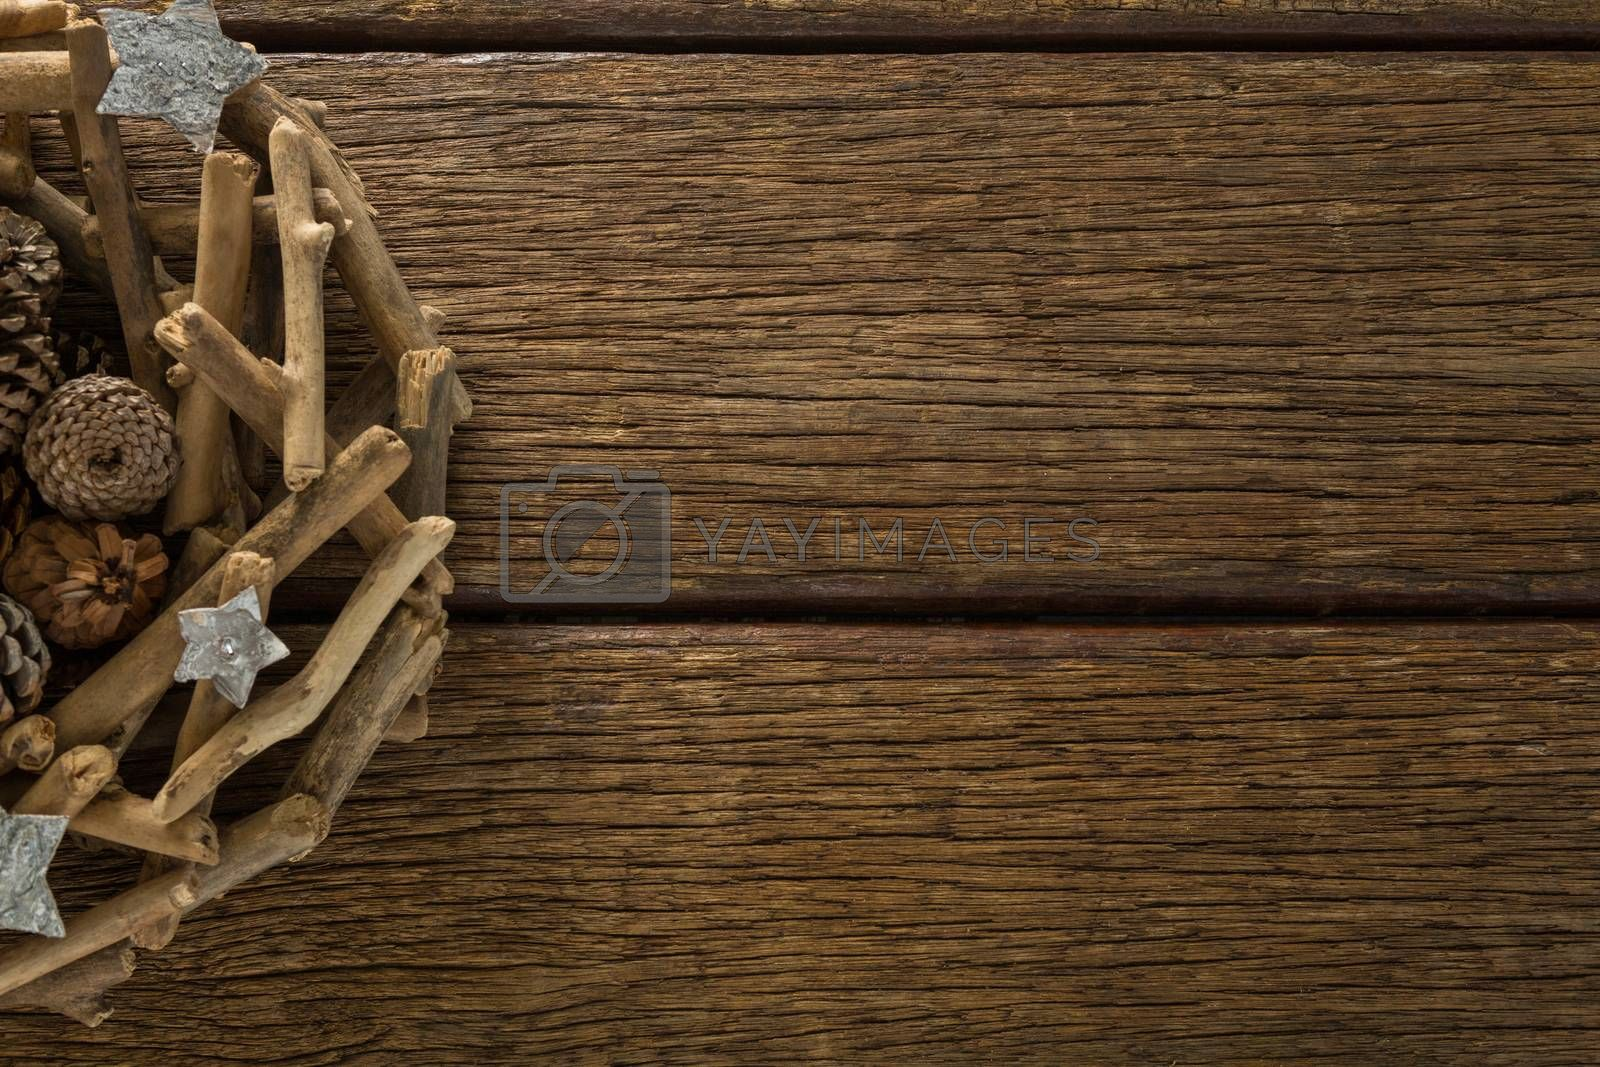 Christmas decorations on wooden table by Wavebreakmedia